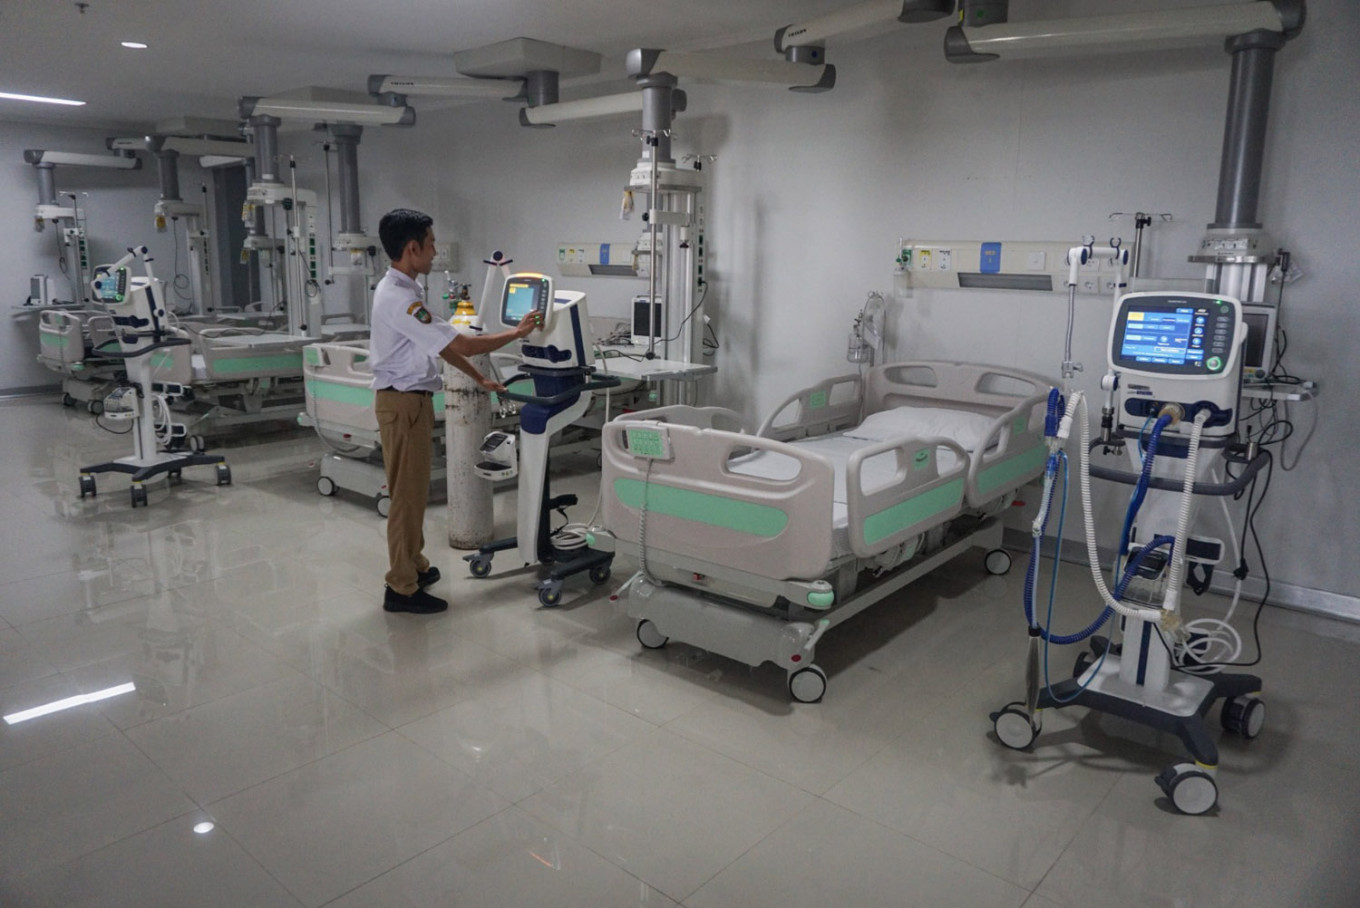 A medical worker prepares the isolation room of Bung Karno Regional Hospital in Surakarta, Central Java, on March 27. 2020. The hospital has dedicated its four isolation rooms for COVID-19 patients. Antara/Mohammad Ayudha